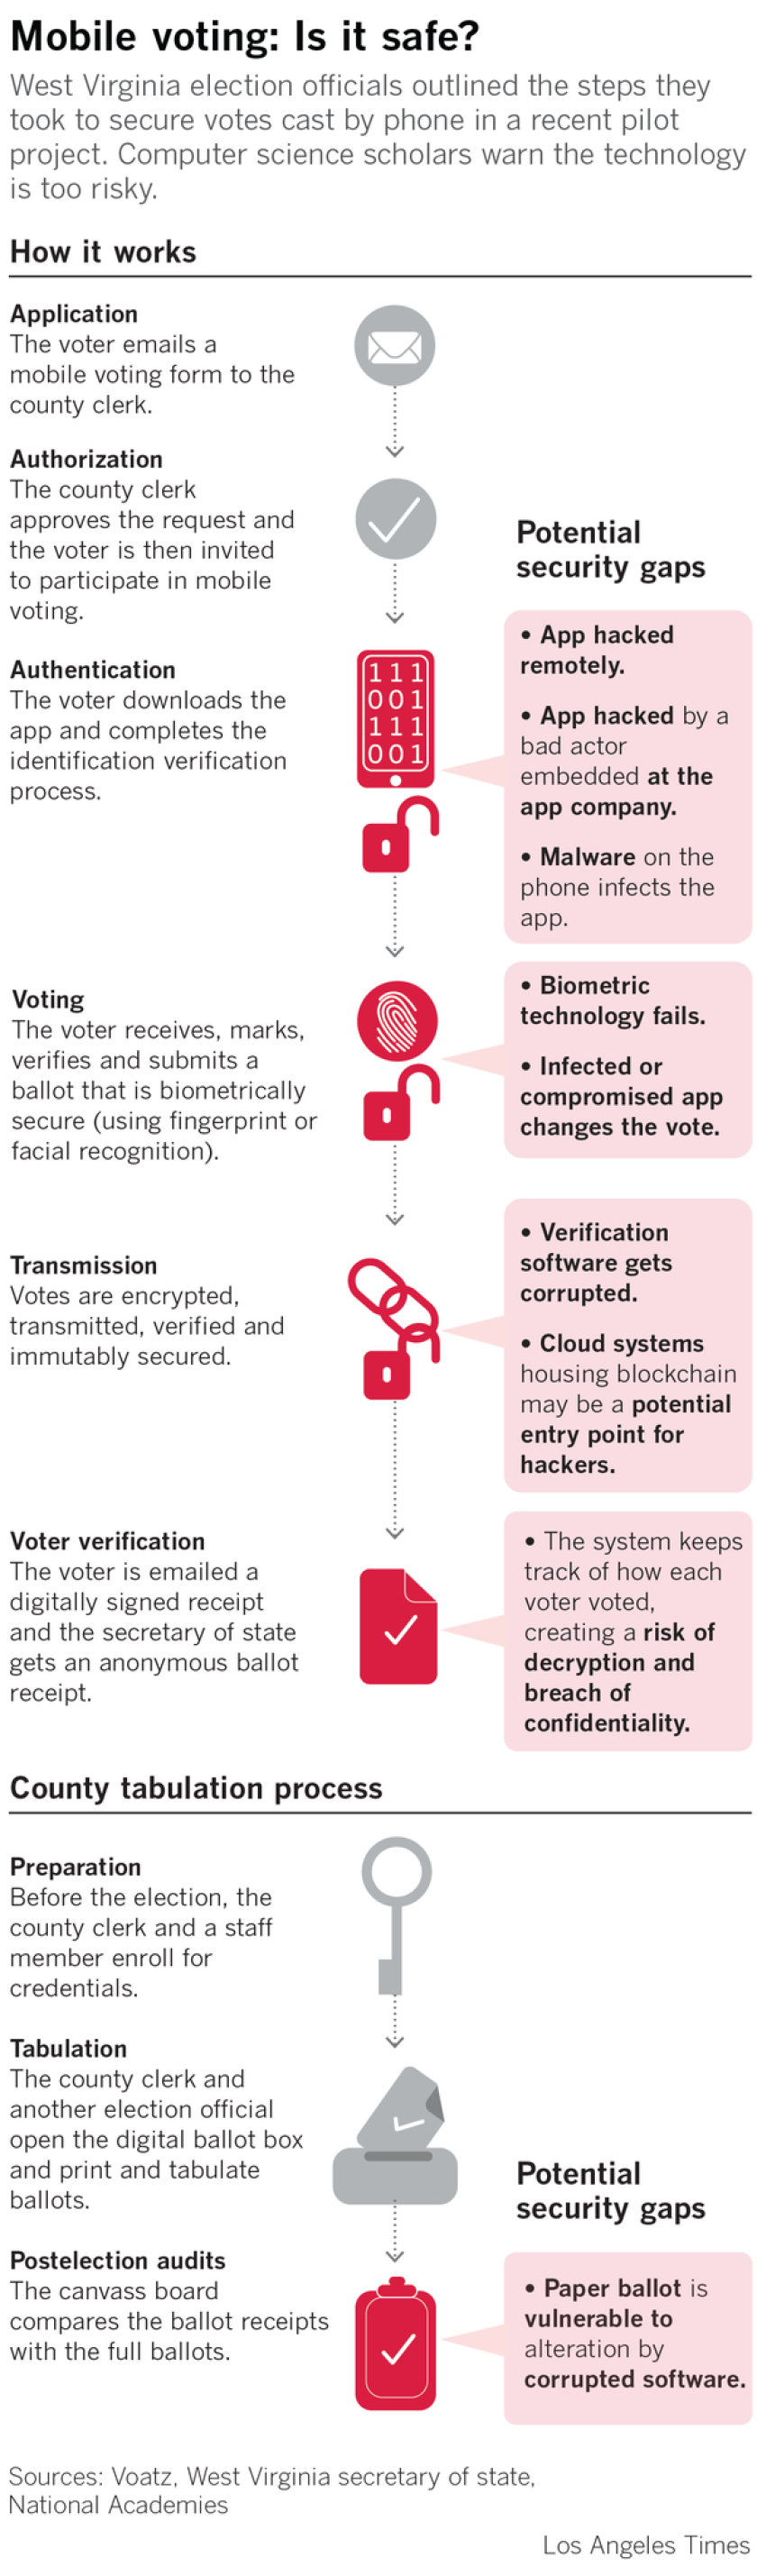 Mobile voting: Is it safe?